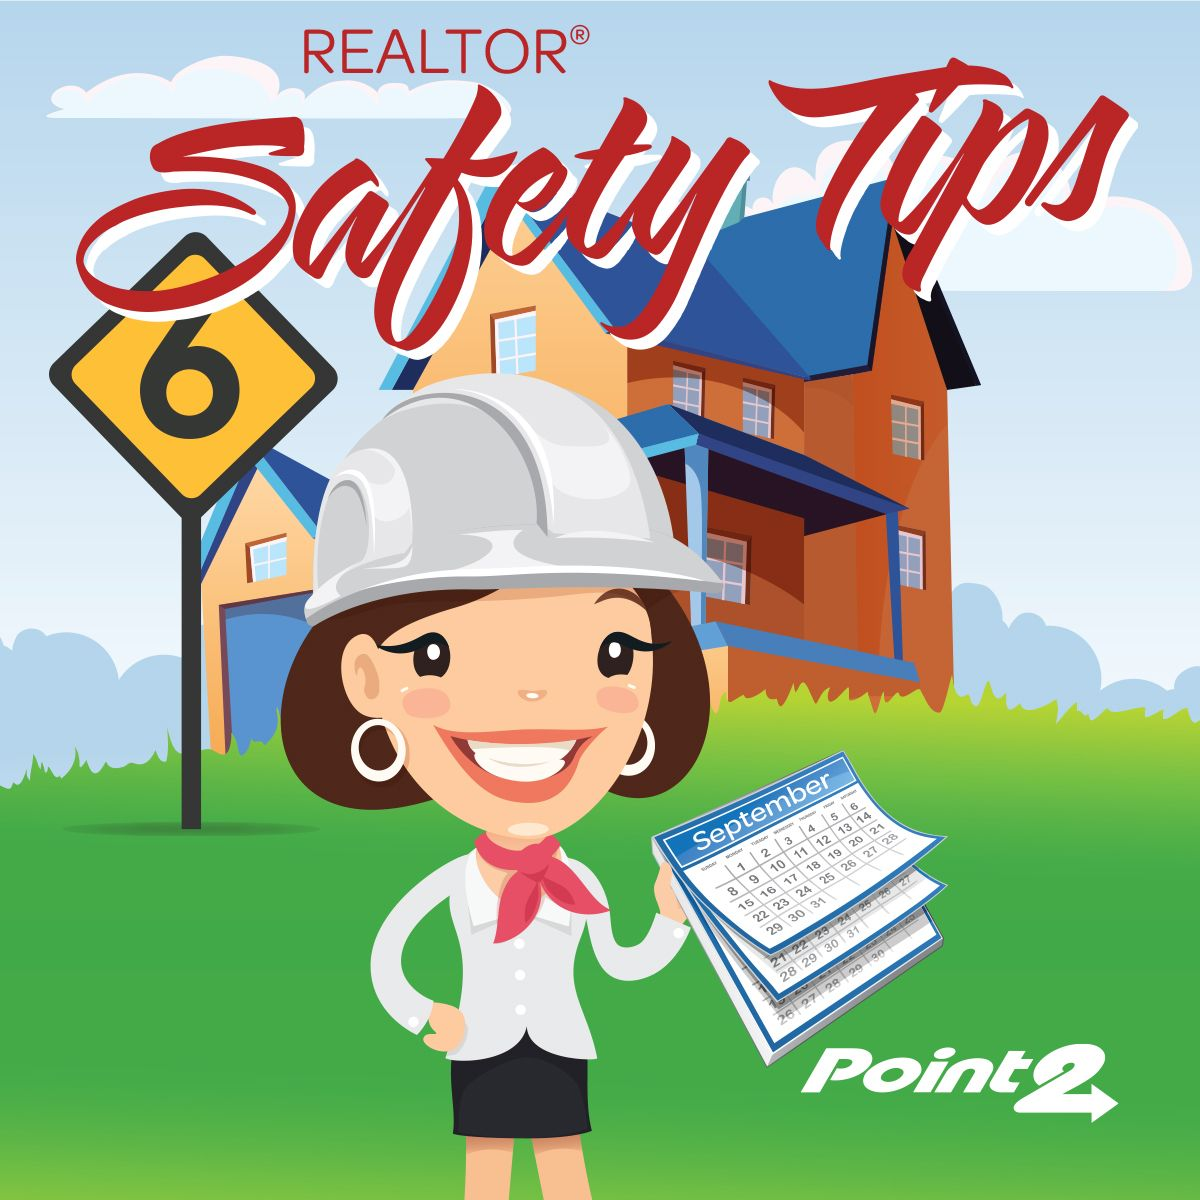 6 REALTOR® Safety Tips INFOGRAPHIC Safety tips, Office